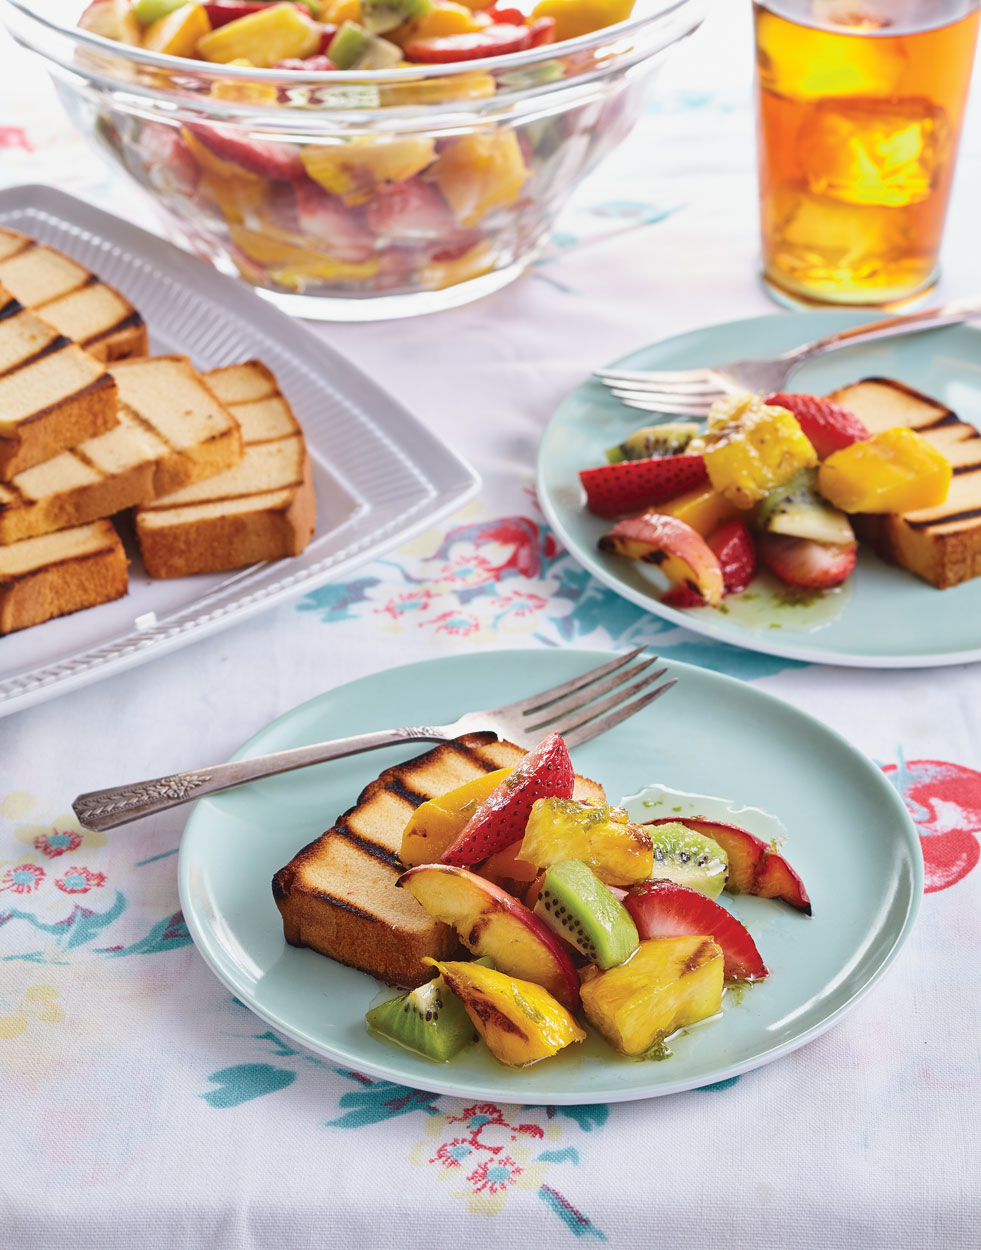 Grilled Fruit Salad with Grilled Pound Cake